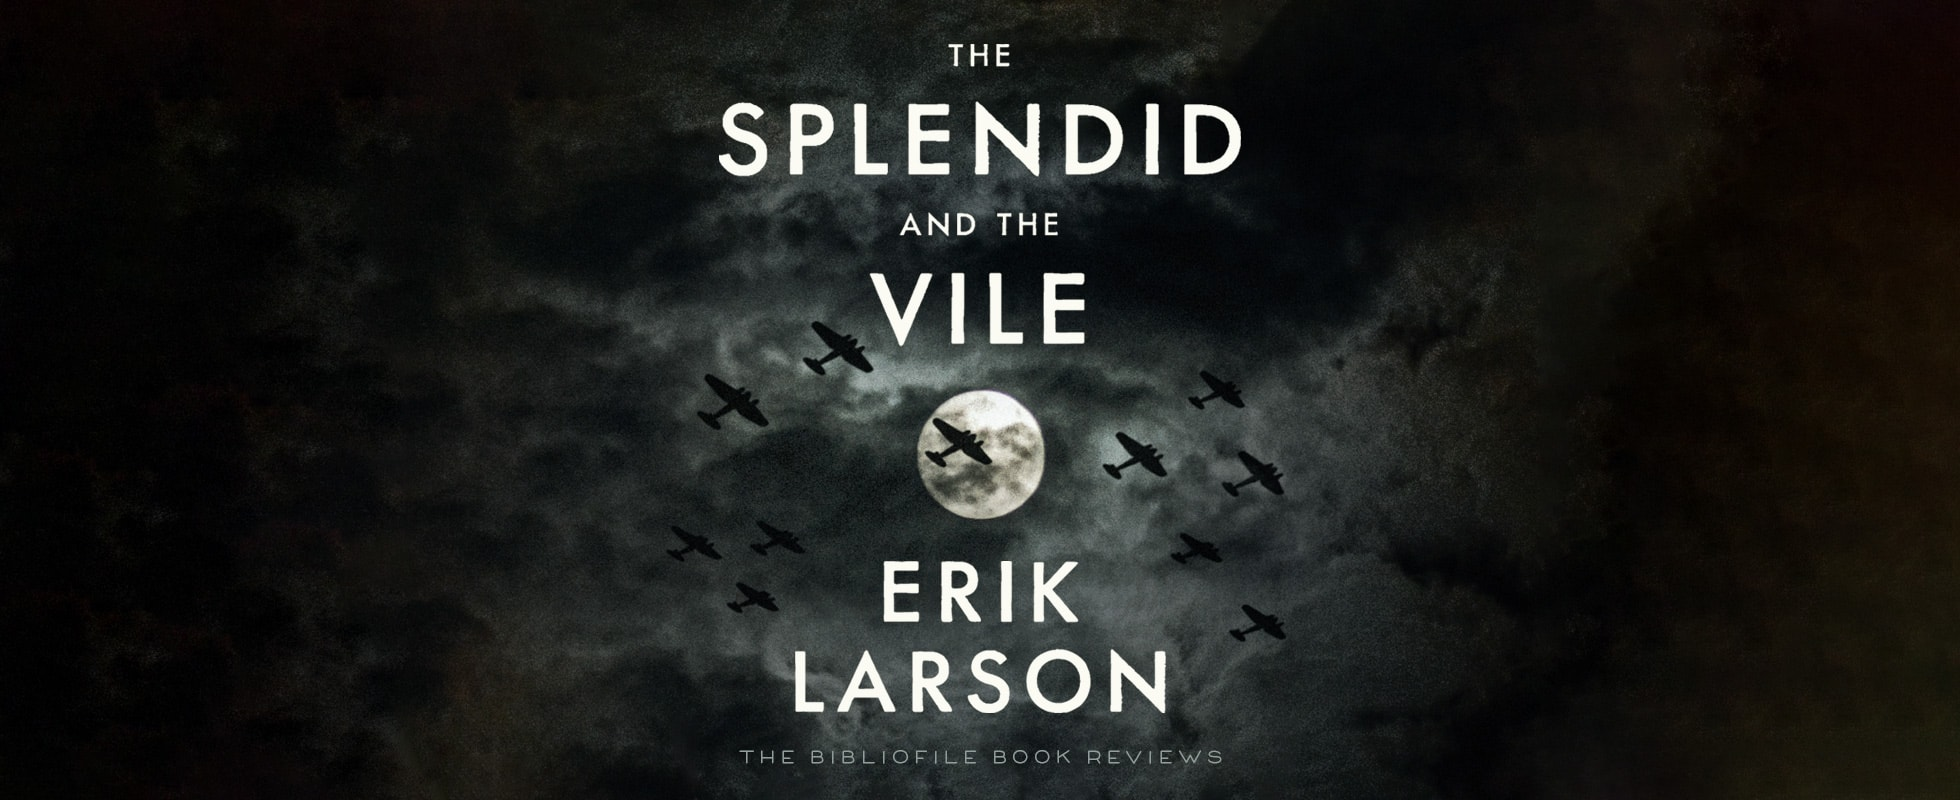 the splendid and the vile by erik larson book review summary synopsis key ideas